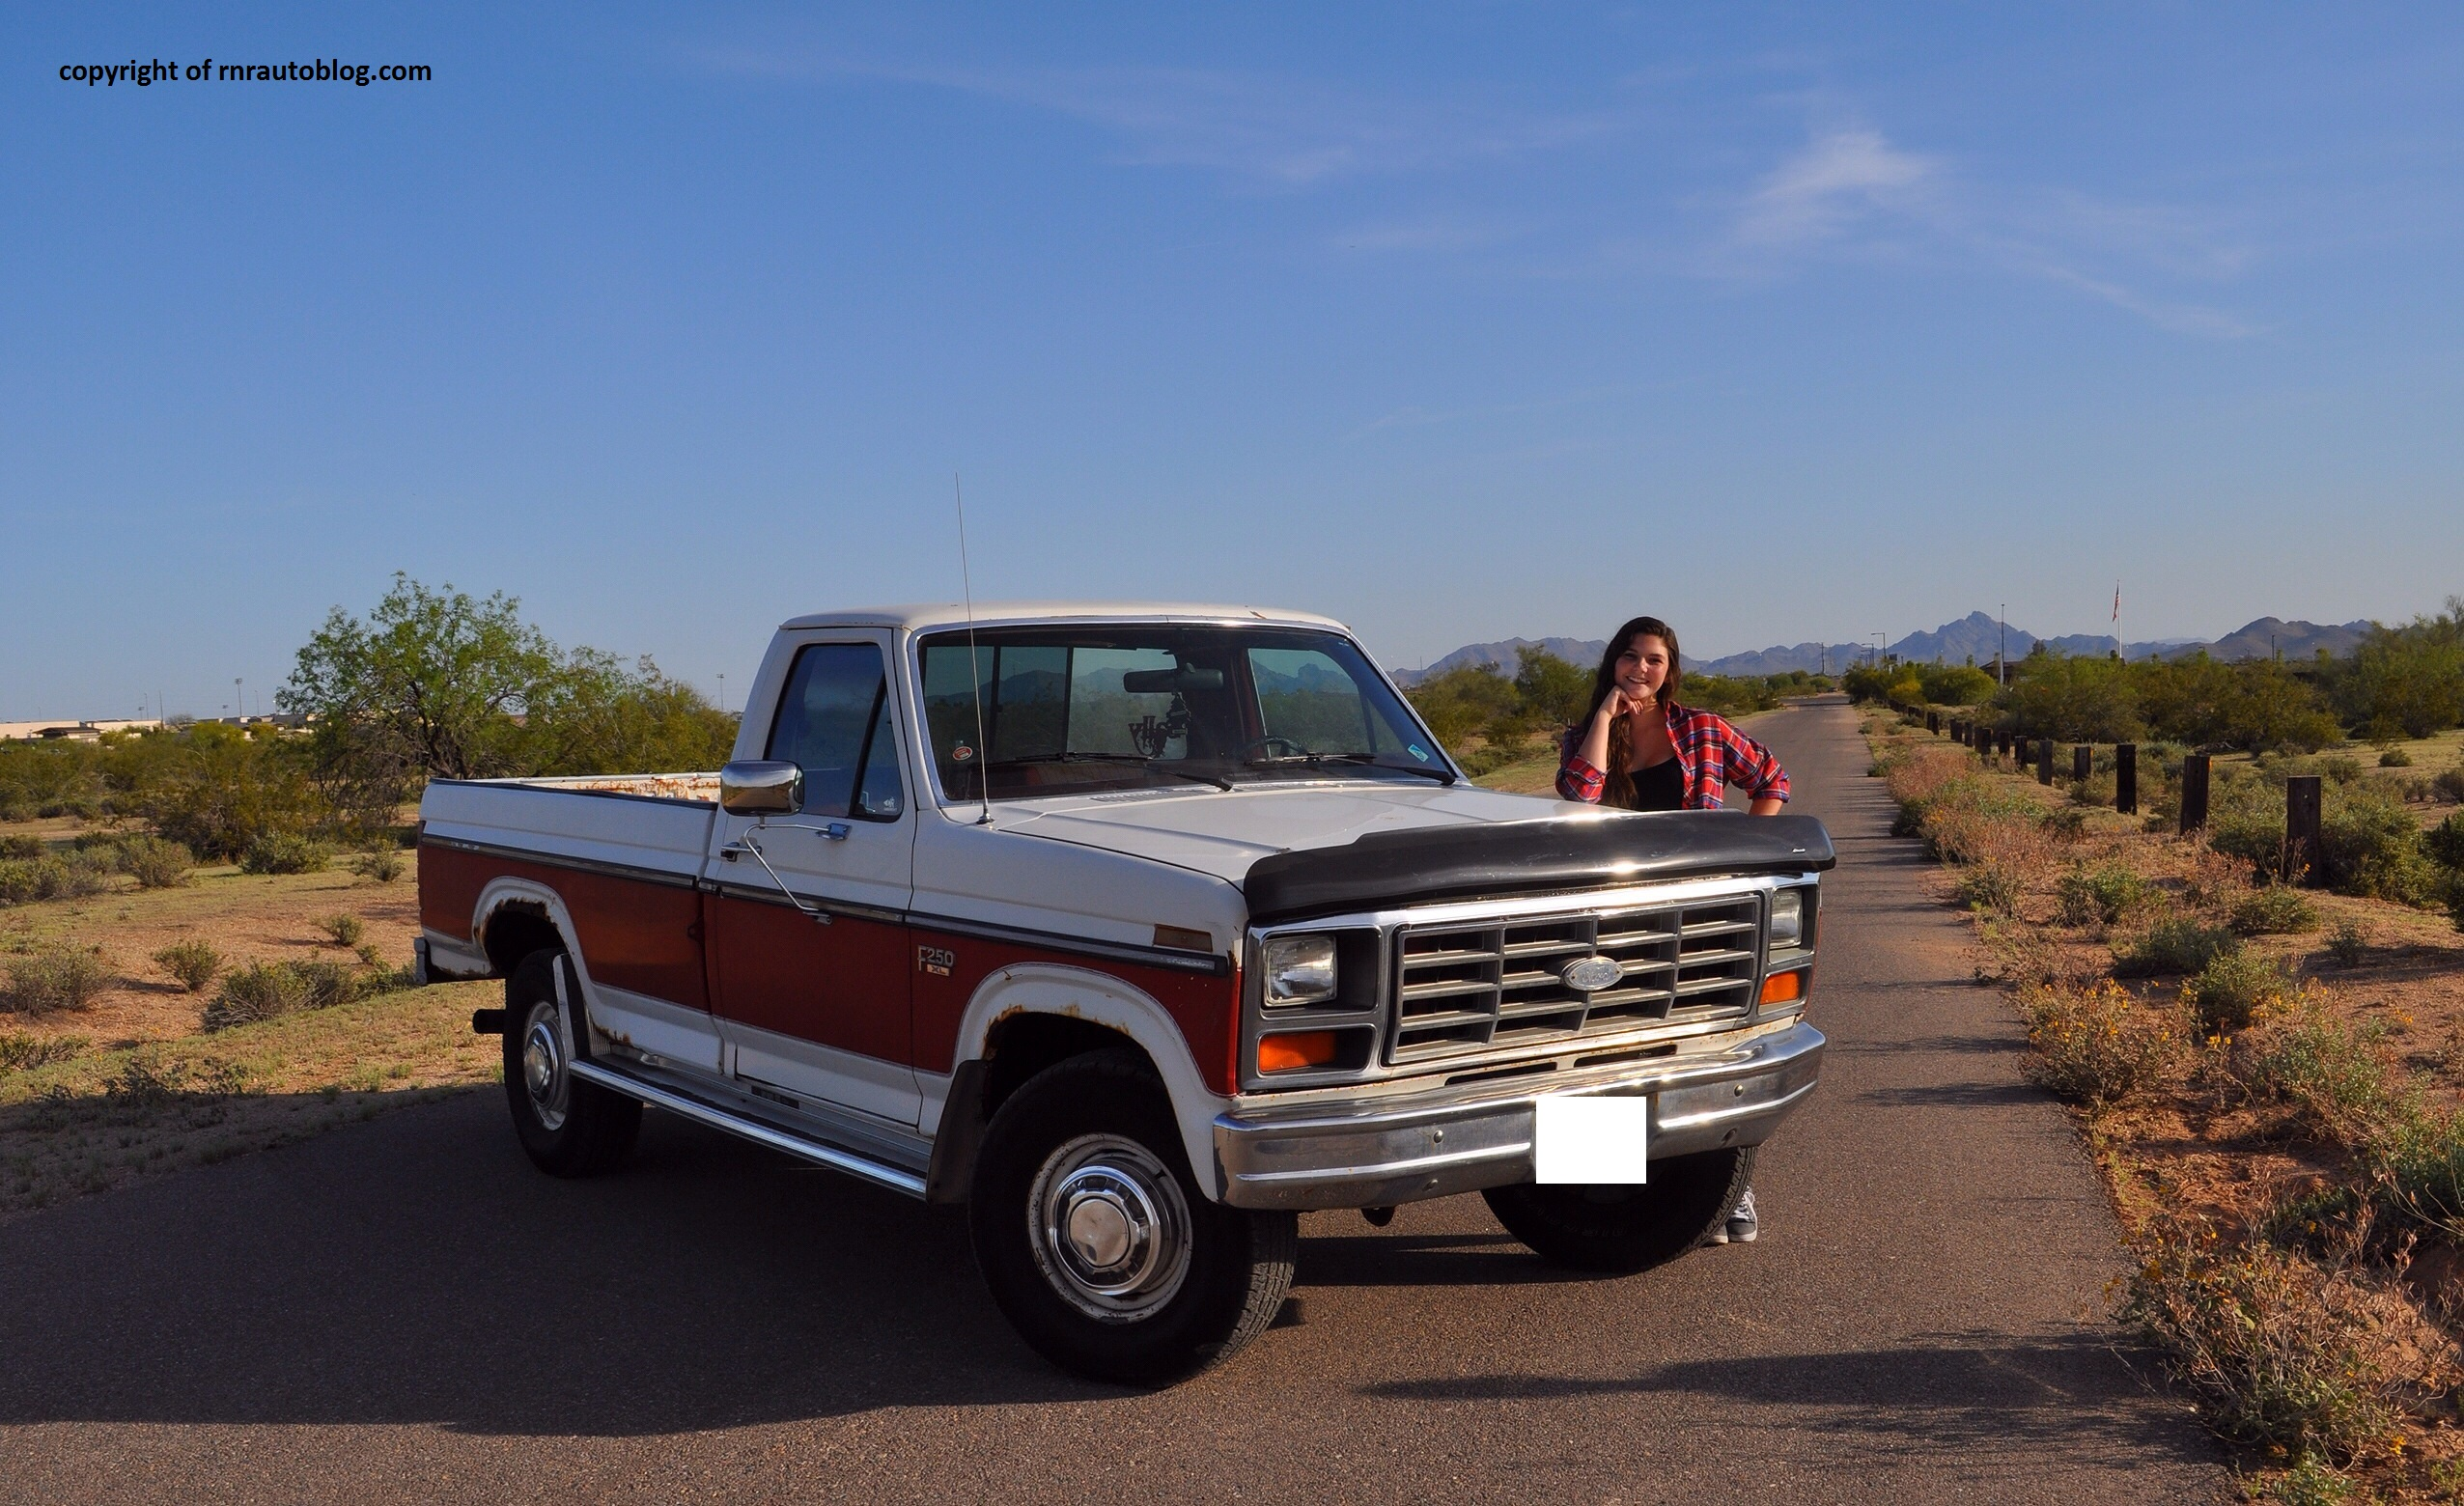 Ford Pick Up F150 >> 1985 ford f250 road test | RNR Automotive Blog